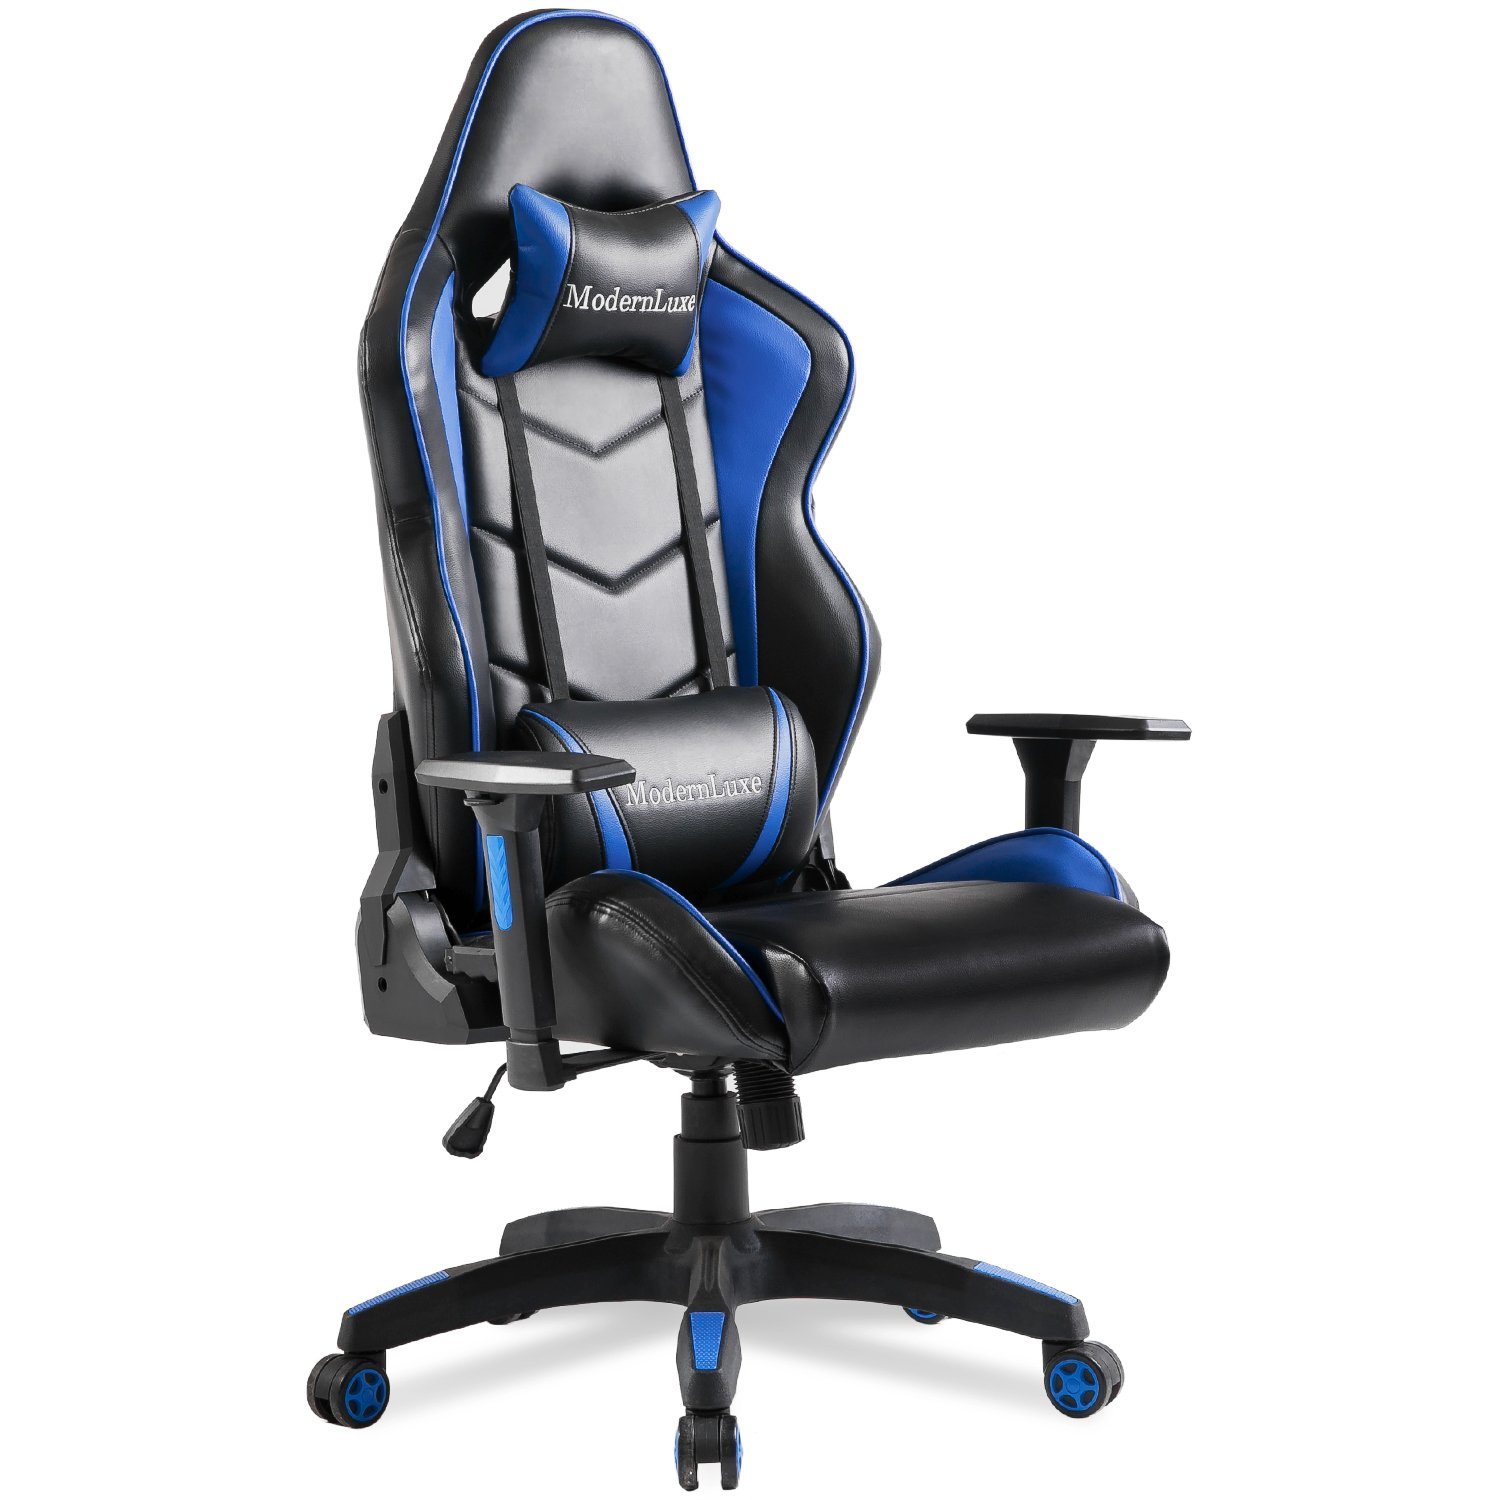 Modern Luxe Video Gaming Chair Executive Swivel Racing High Back Office Chair Lumbar Support Ergonomic with Headrest (Blue)